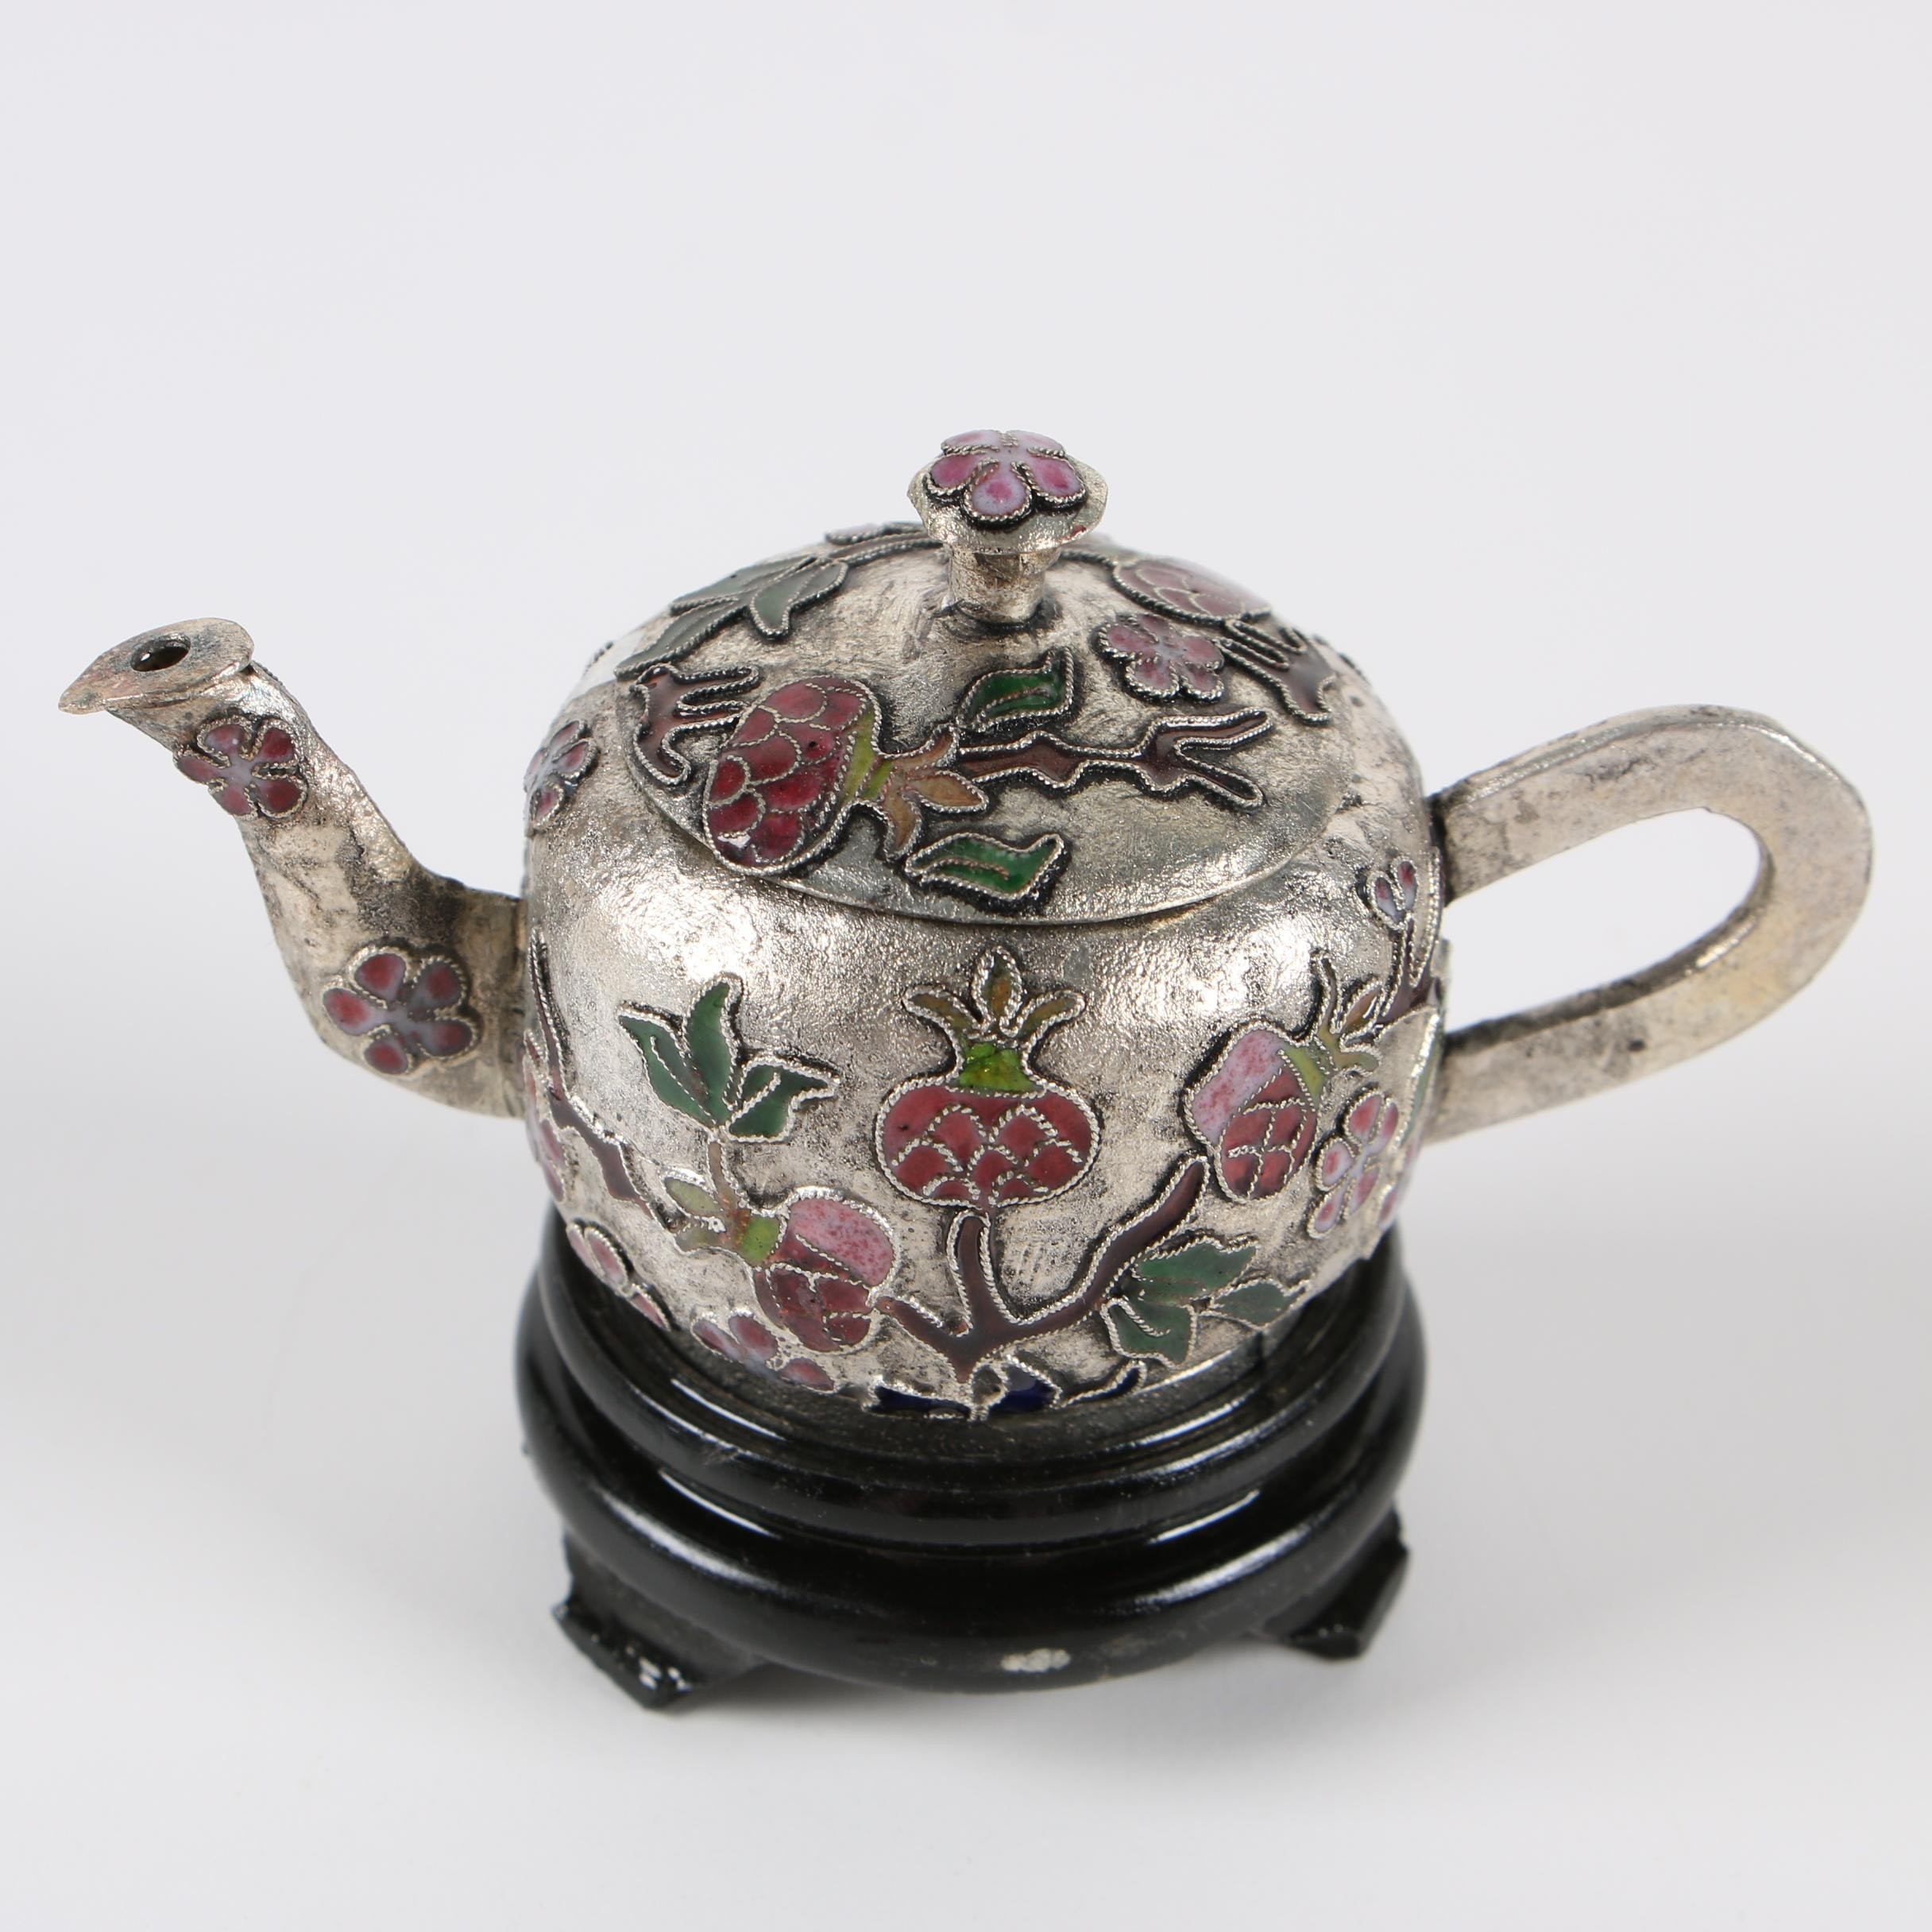 Chinese Cloisonné Miniature Teapot on Wood Stand